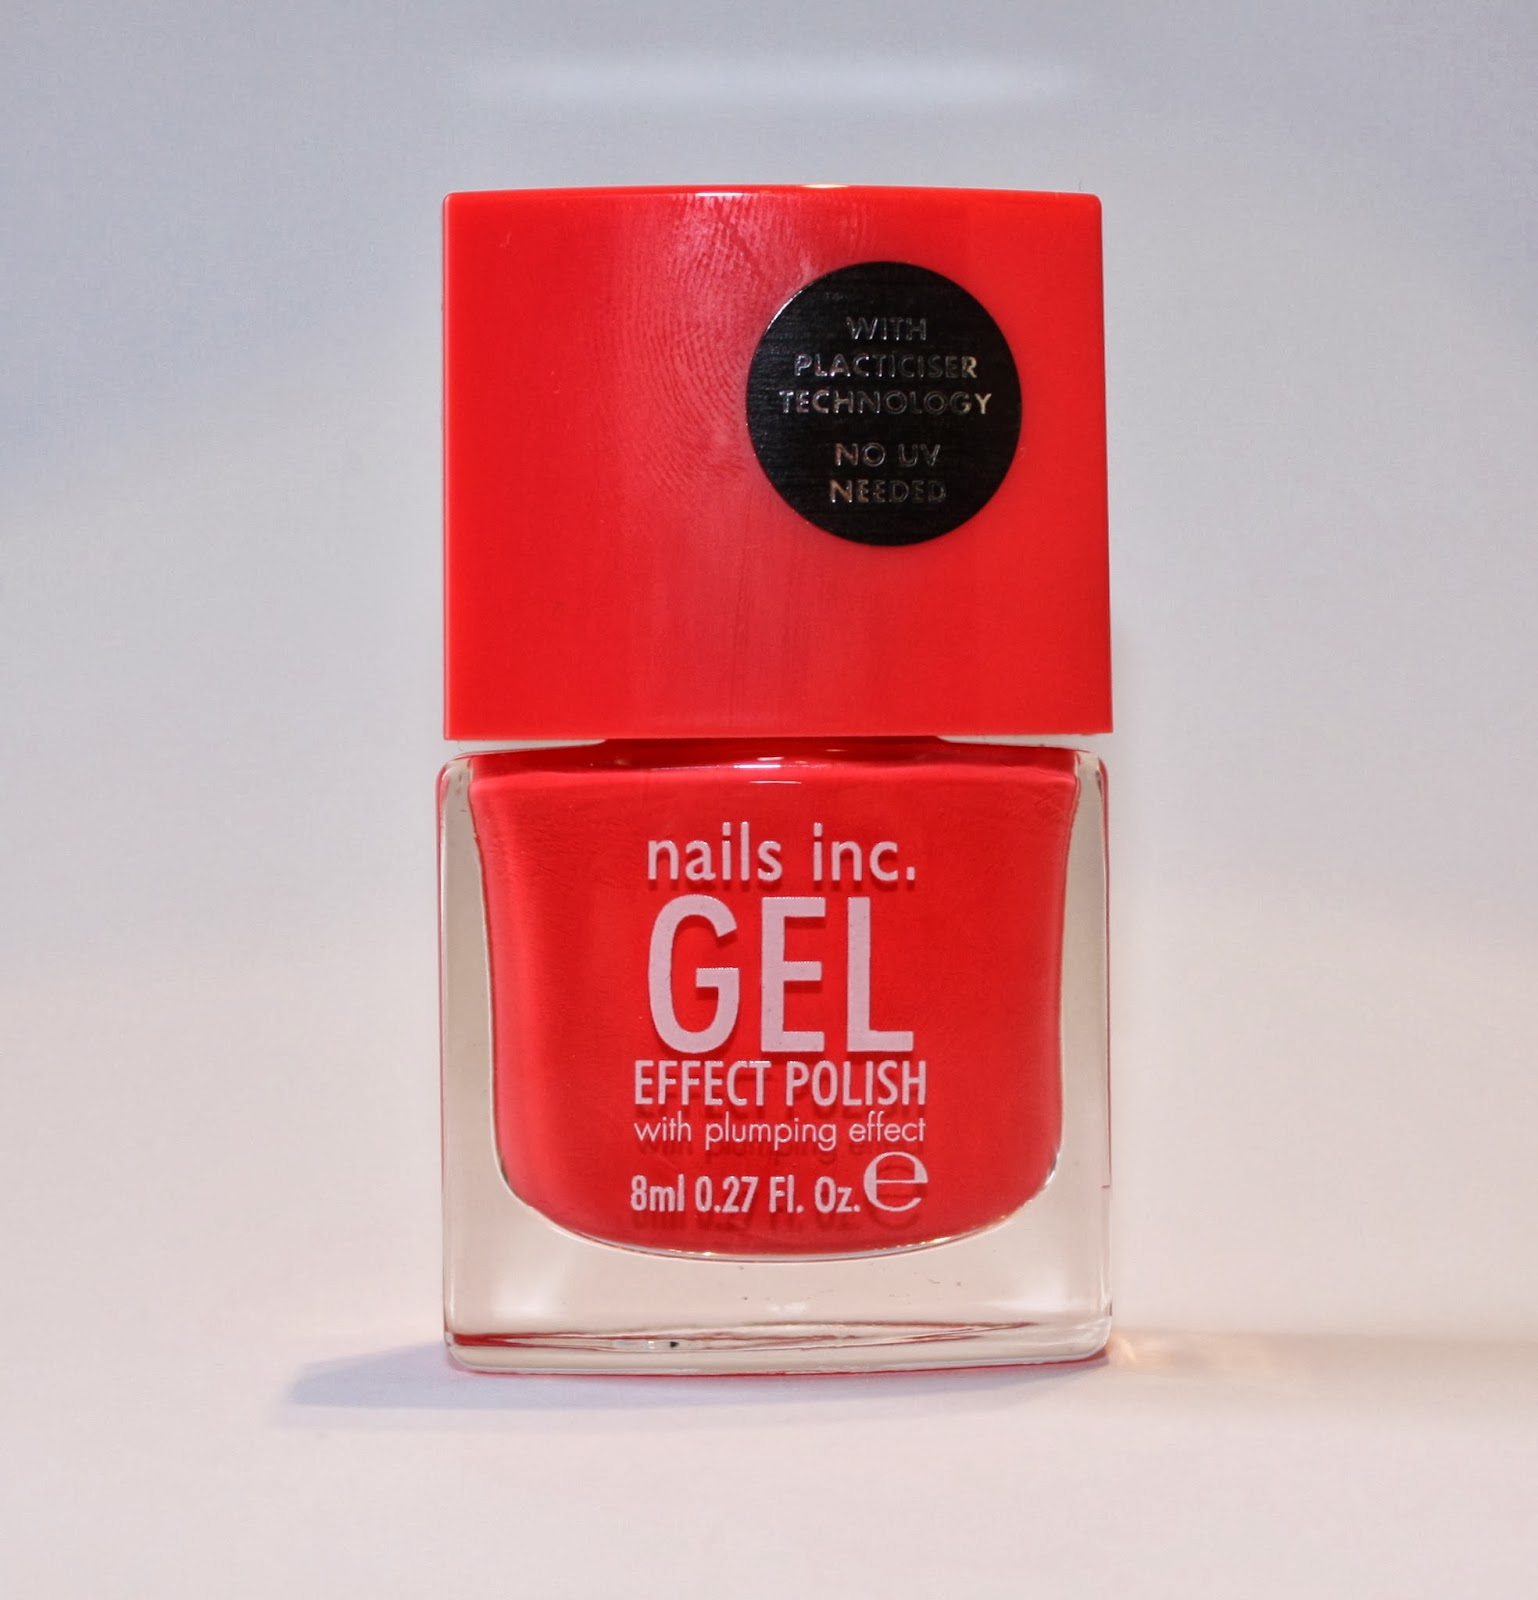 Nails Inc. Gel Effect Polish in Kensington Passage